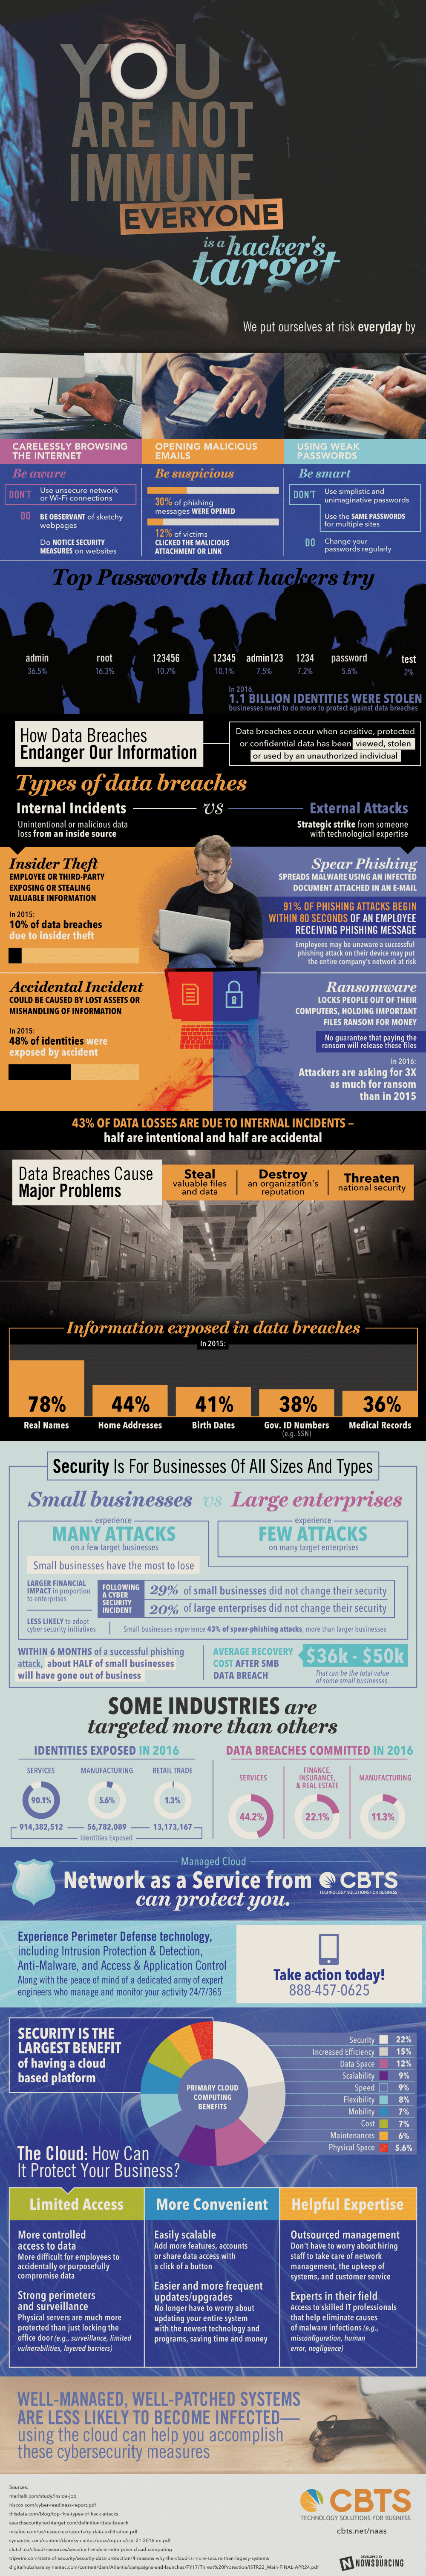 Is Your Business Safe From Hackers? - Infographic